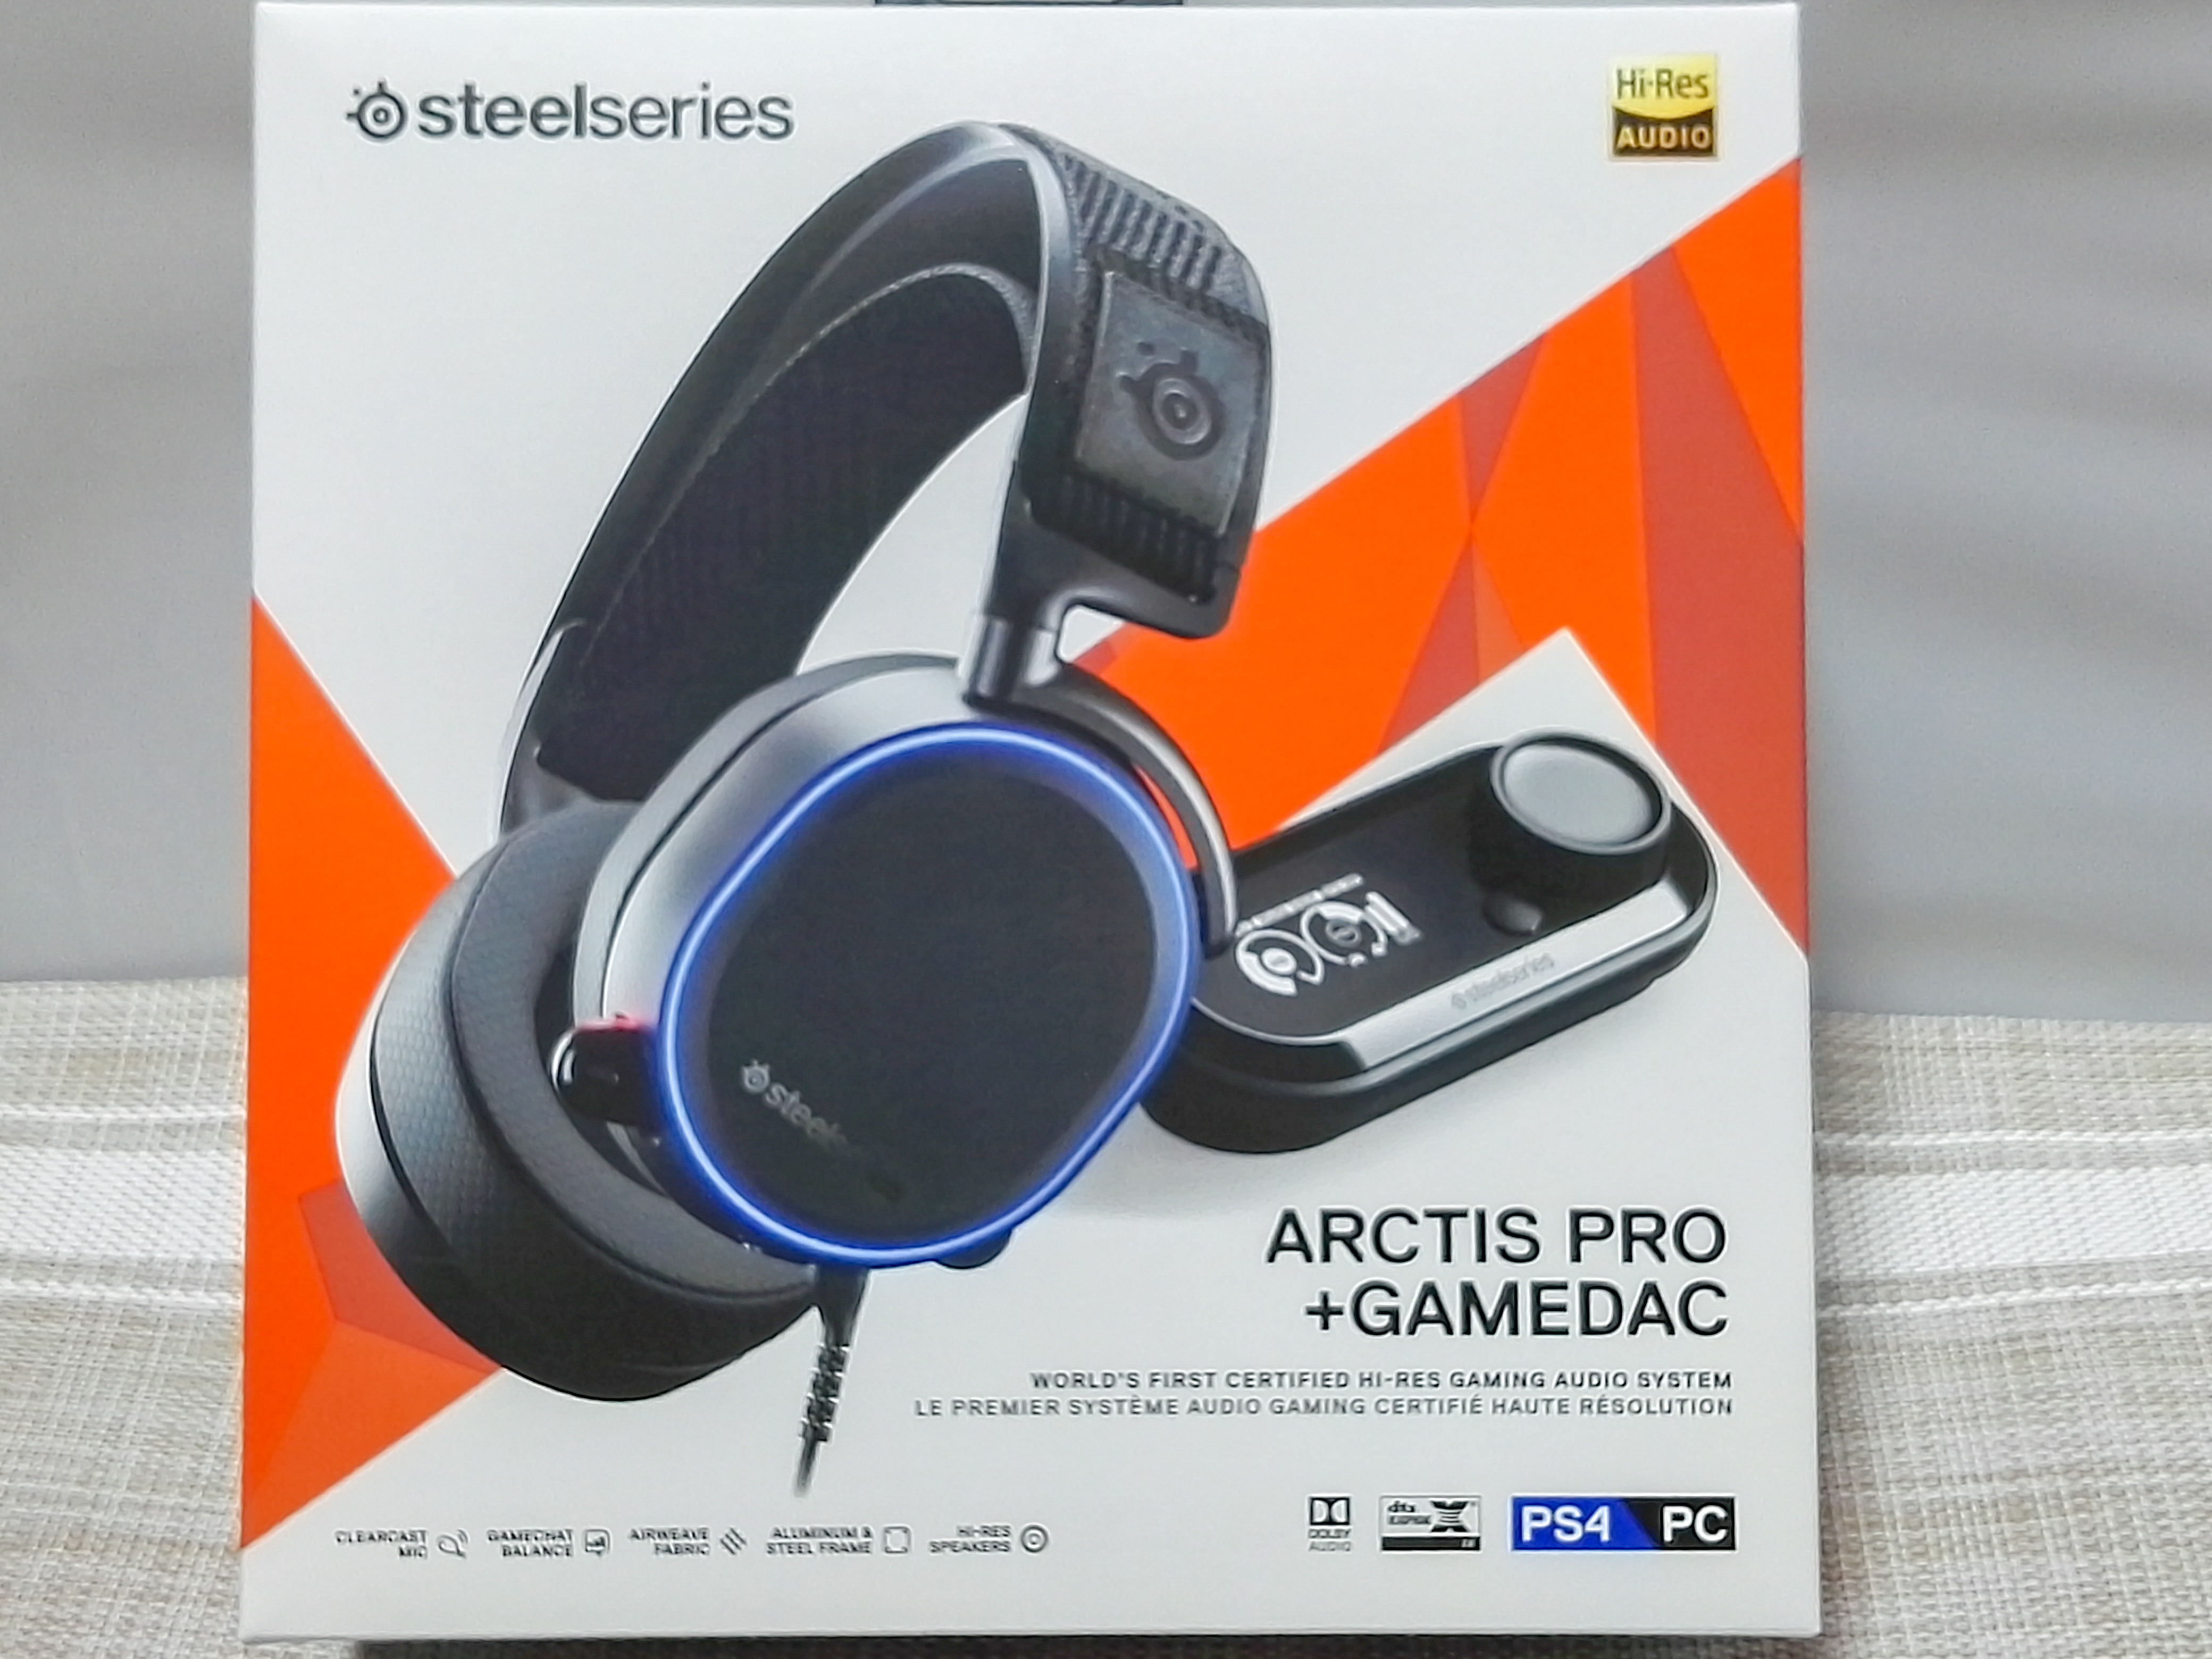 PS4でも7.1ch! SteelSeries『Arctis Pro + GameDAC』レビュー